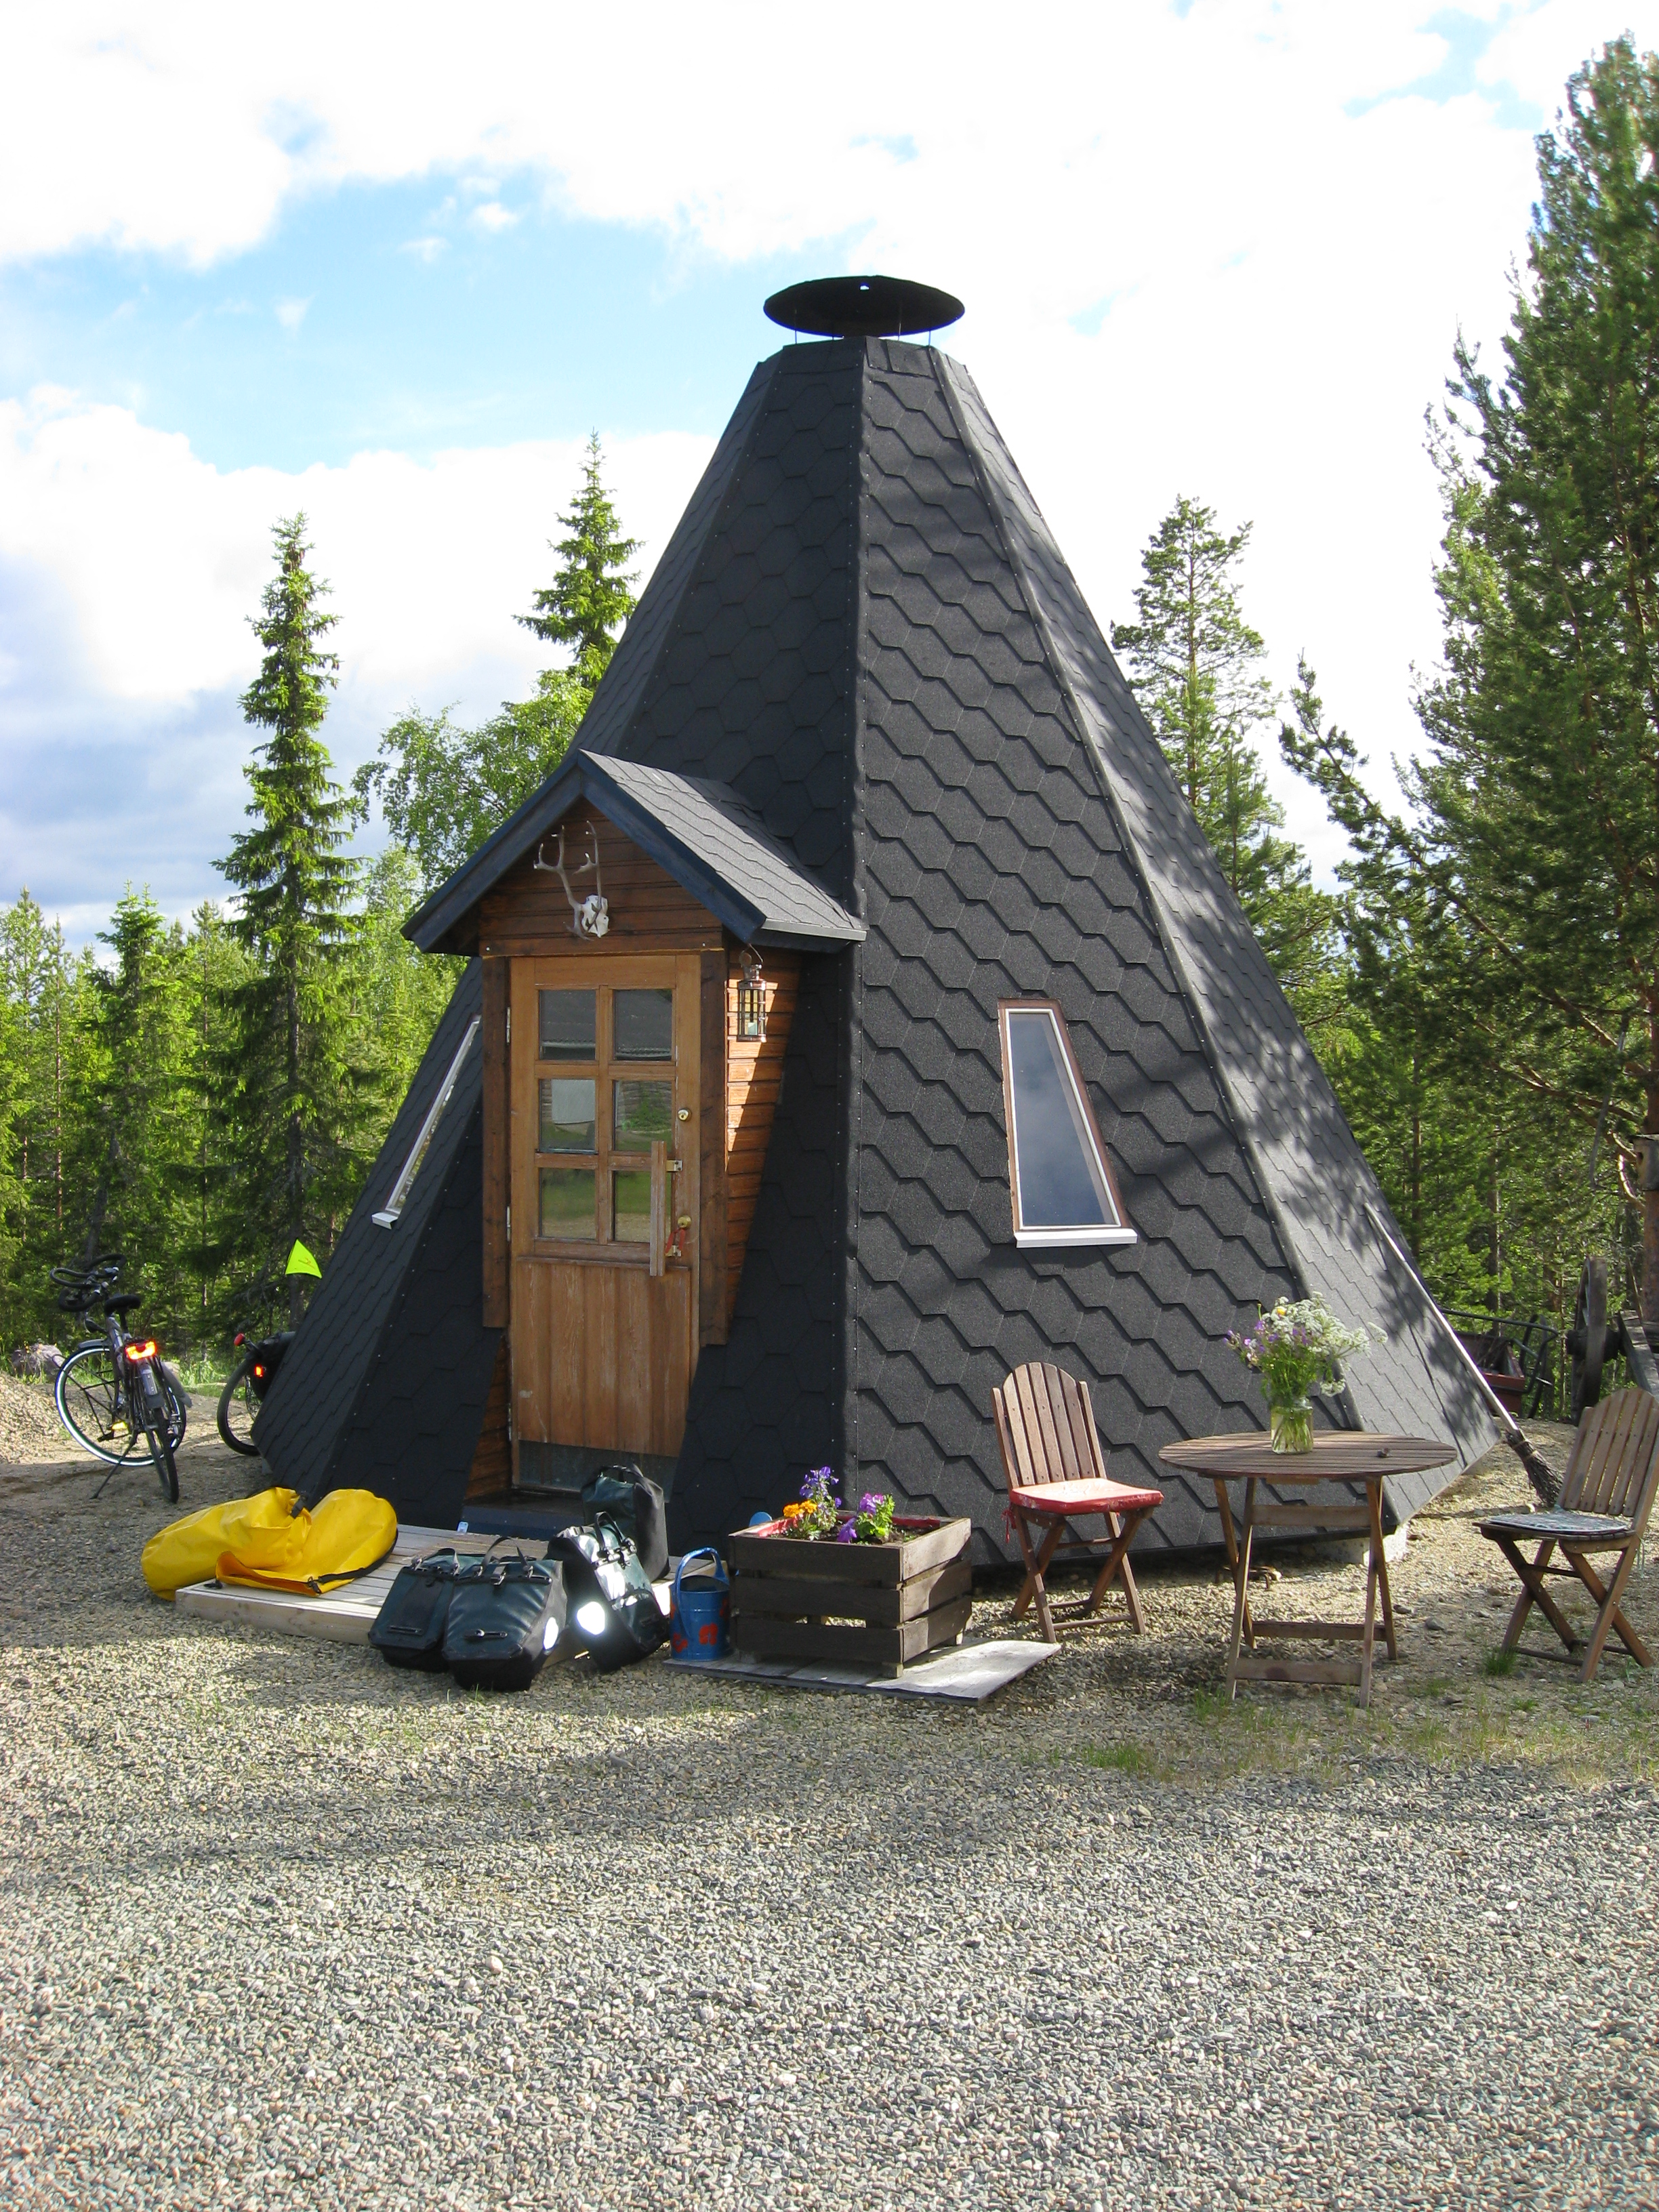 Modern tipi tent bikingcycles Tent a house